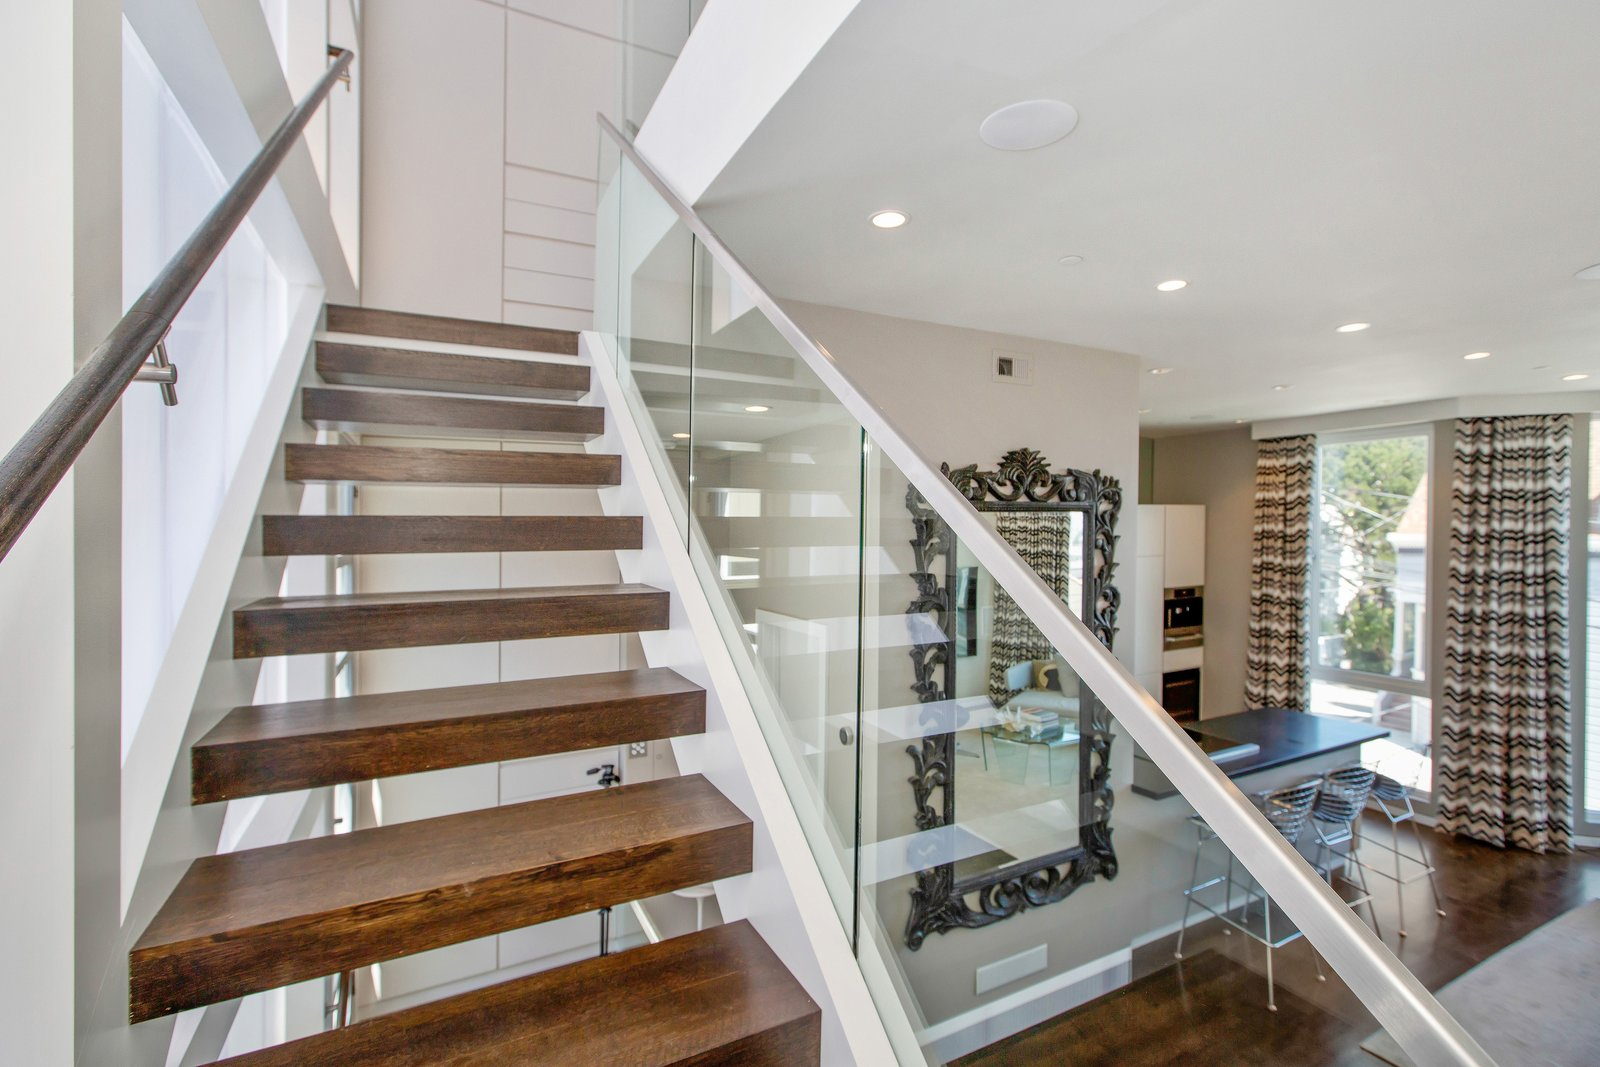 Tagged: Staircase, Wood Tread, and Glass Railing. LEED Platinum House in SF by DNM Architecture